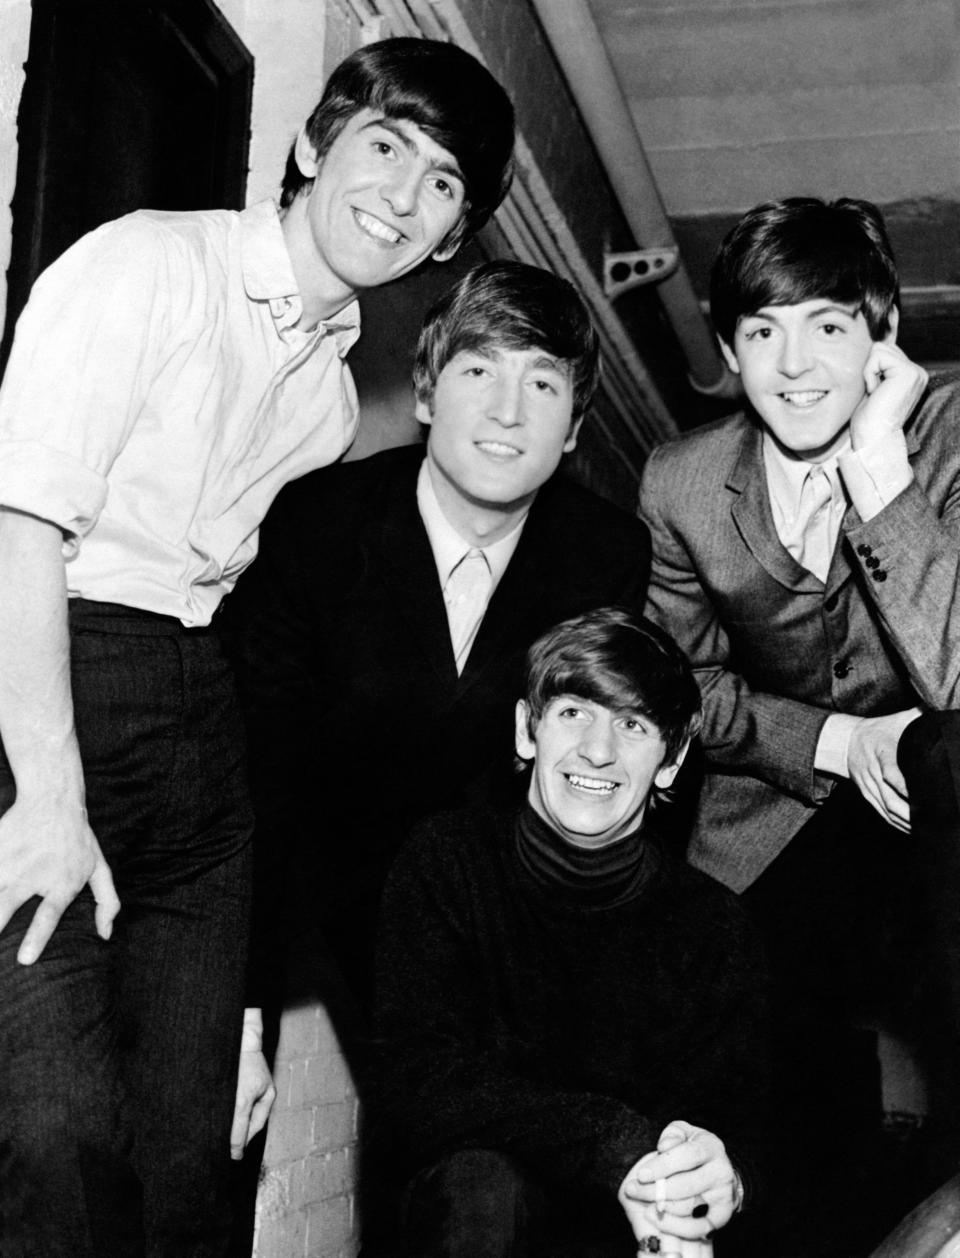 Portrait of English band The Beatles, the singers and musicians John Lennon, Paul McCartney, George Harrison and Ringo Starr (Richard Parkin Starkey). 1960s. (Photo by Mondadori via Getty Images)